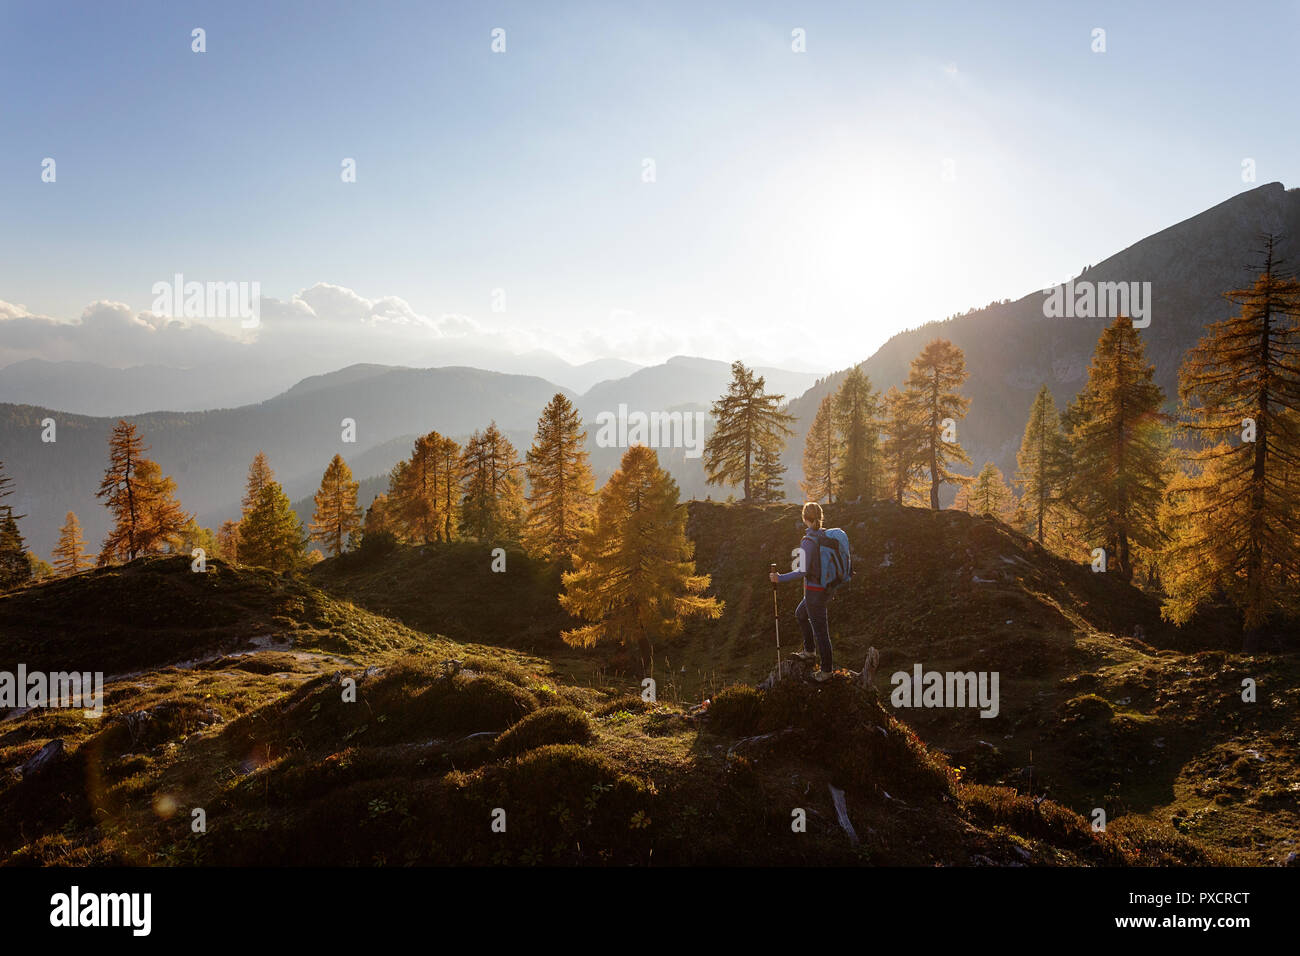 Woman standing on a hill at Krstenica meadow holding hiking sticks at golden light at sunset, Julian alps, Slovenia Stock Photo